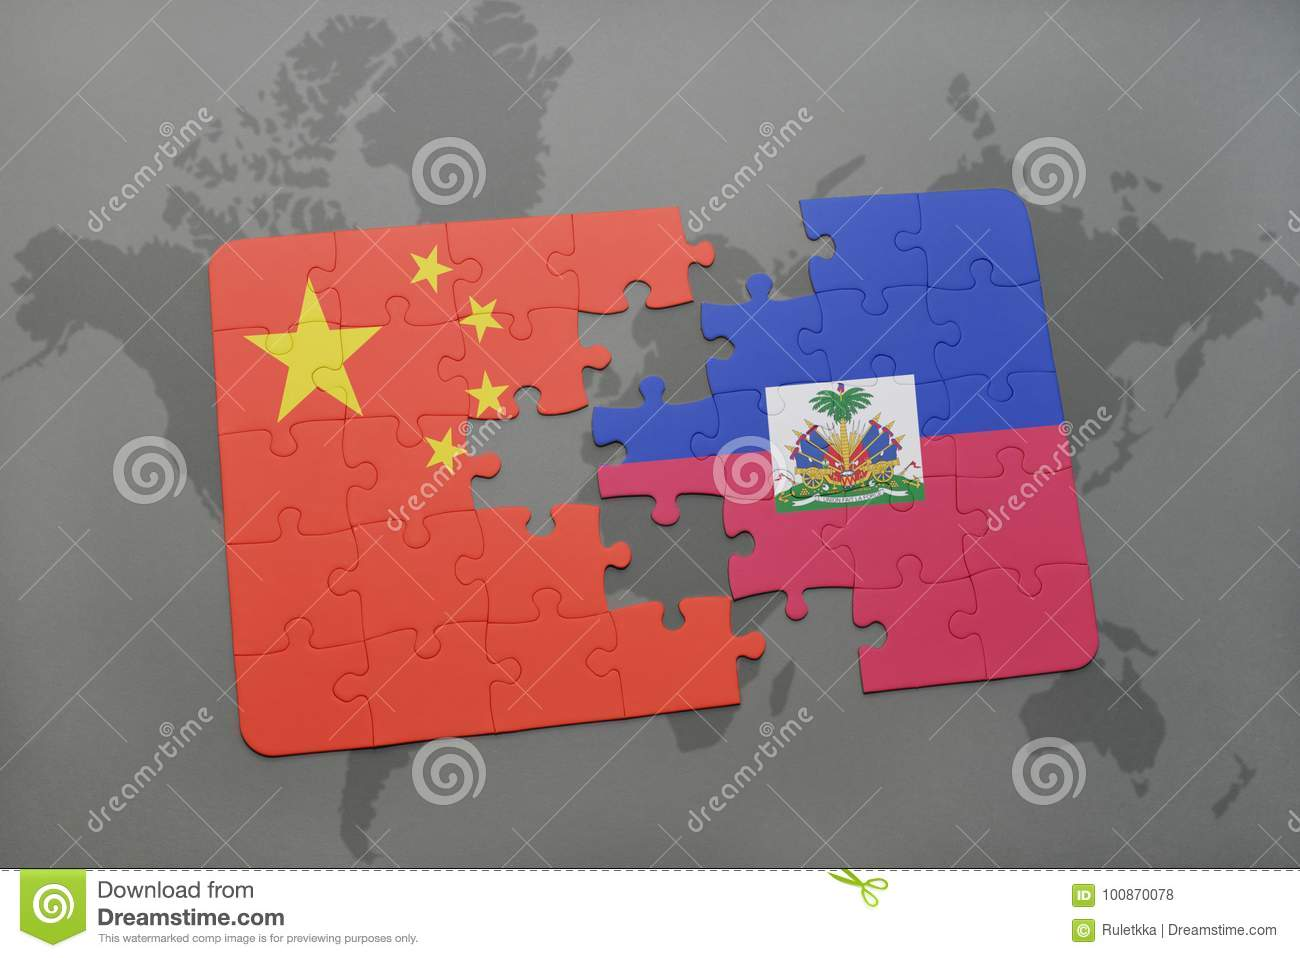 Puzzle with the national flag of china and haiti on a world map download puzzle with the national flag of china and haiti on a world map background gumiabroncs Images